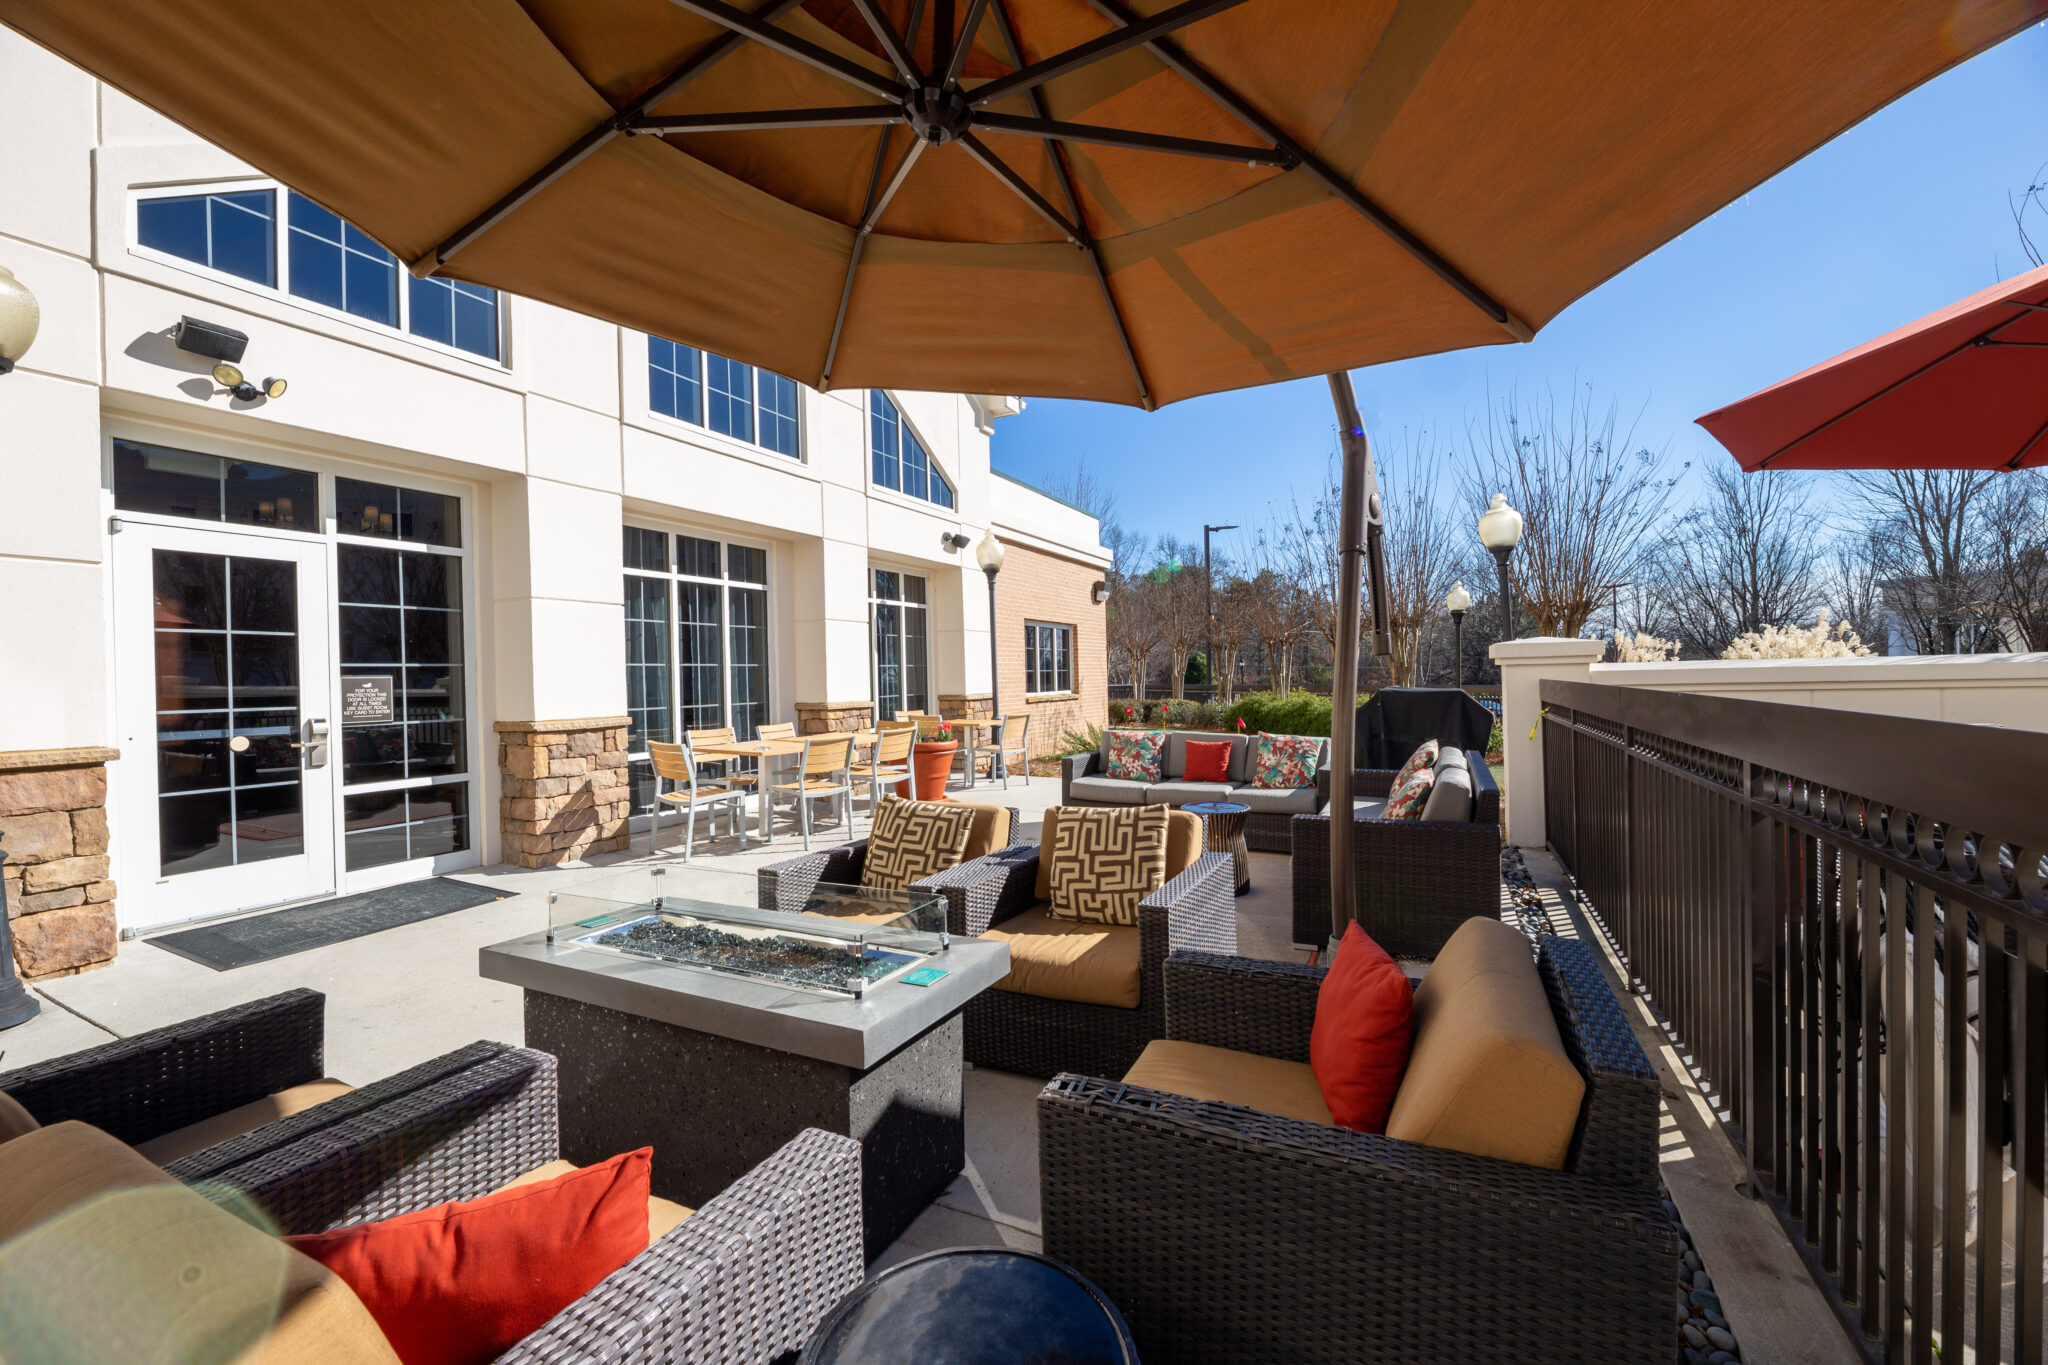 Homewood Suites by Hilton Lawrenceville Duluth ATLHW Outdoor Space-1